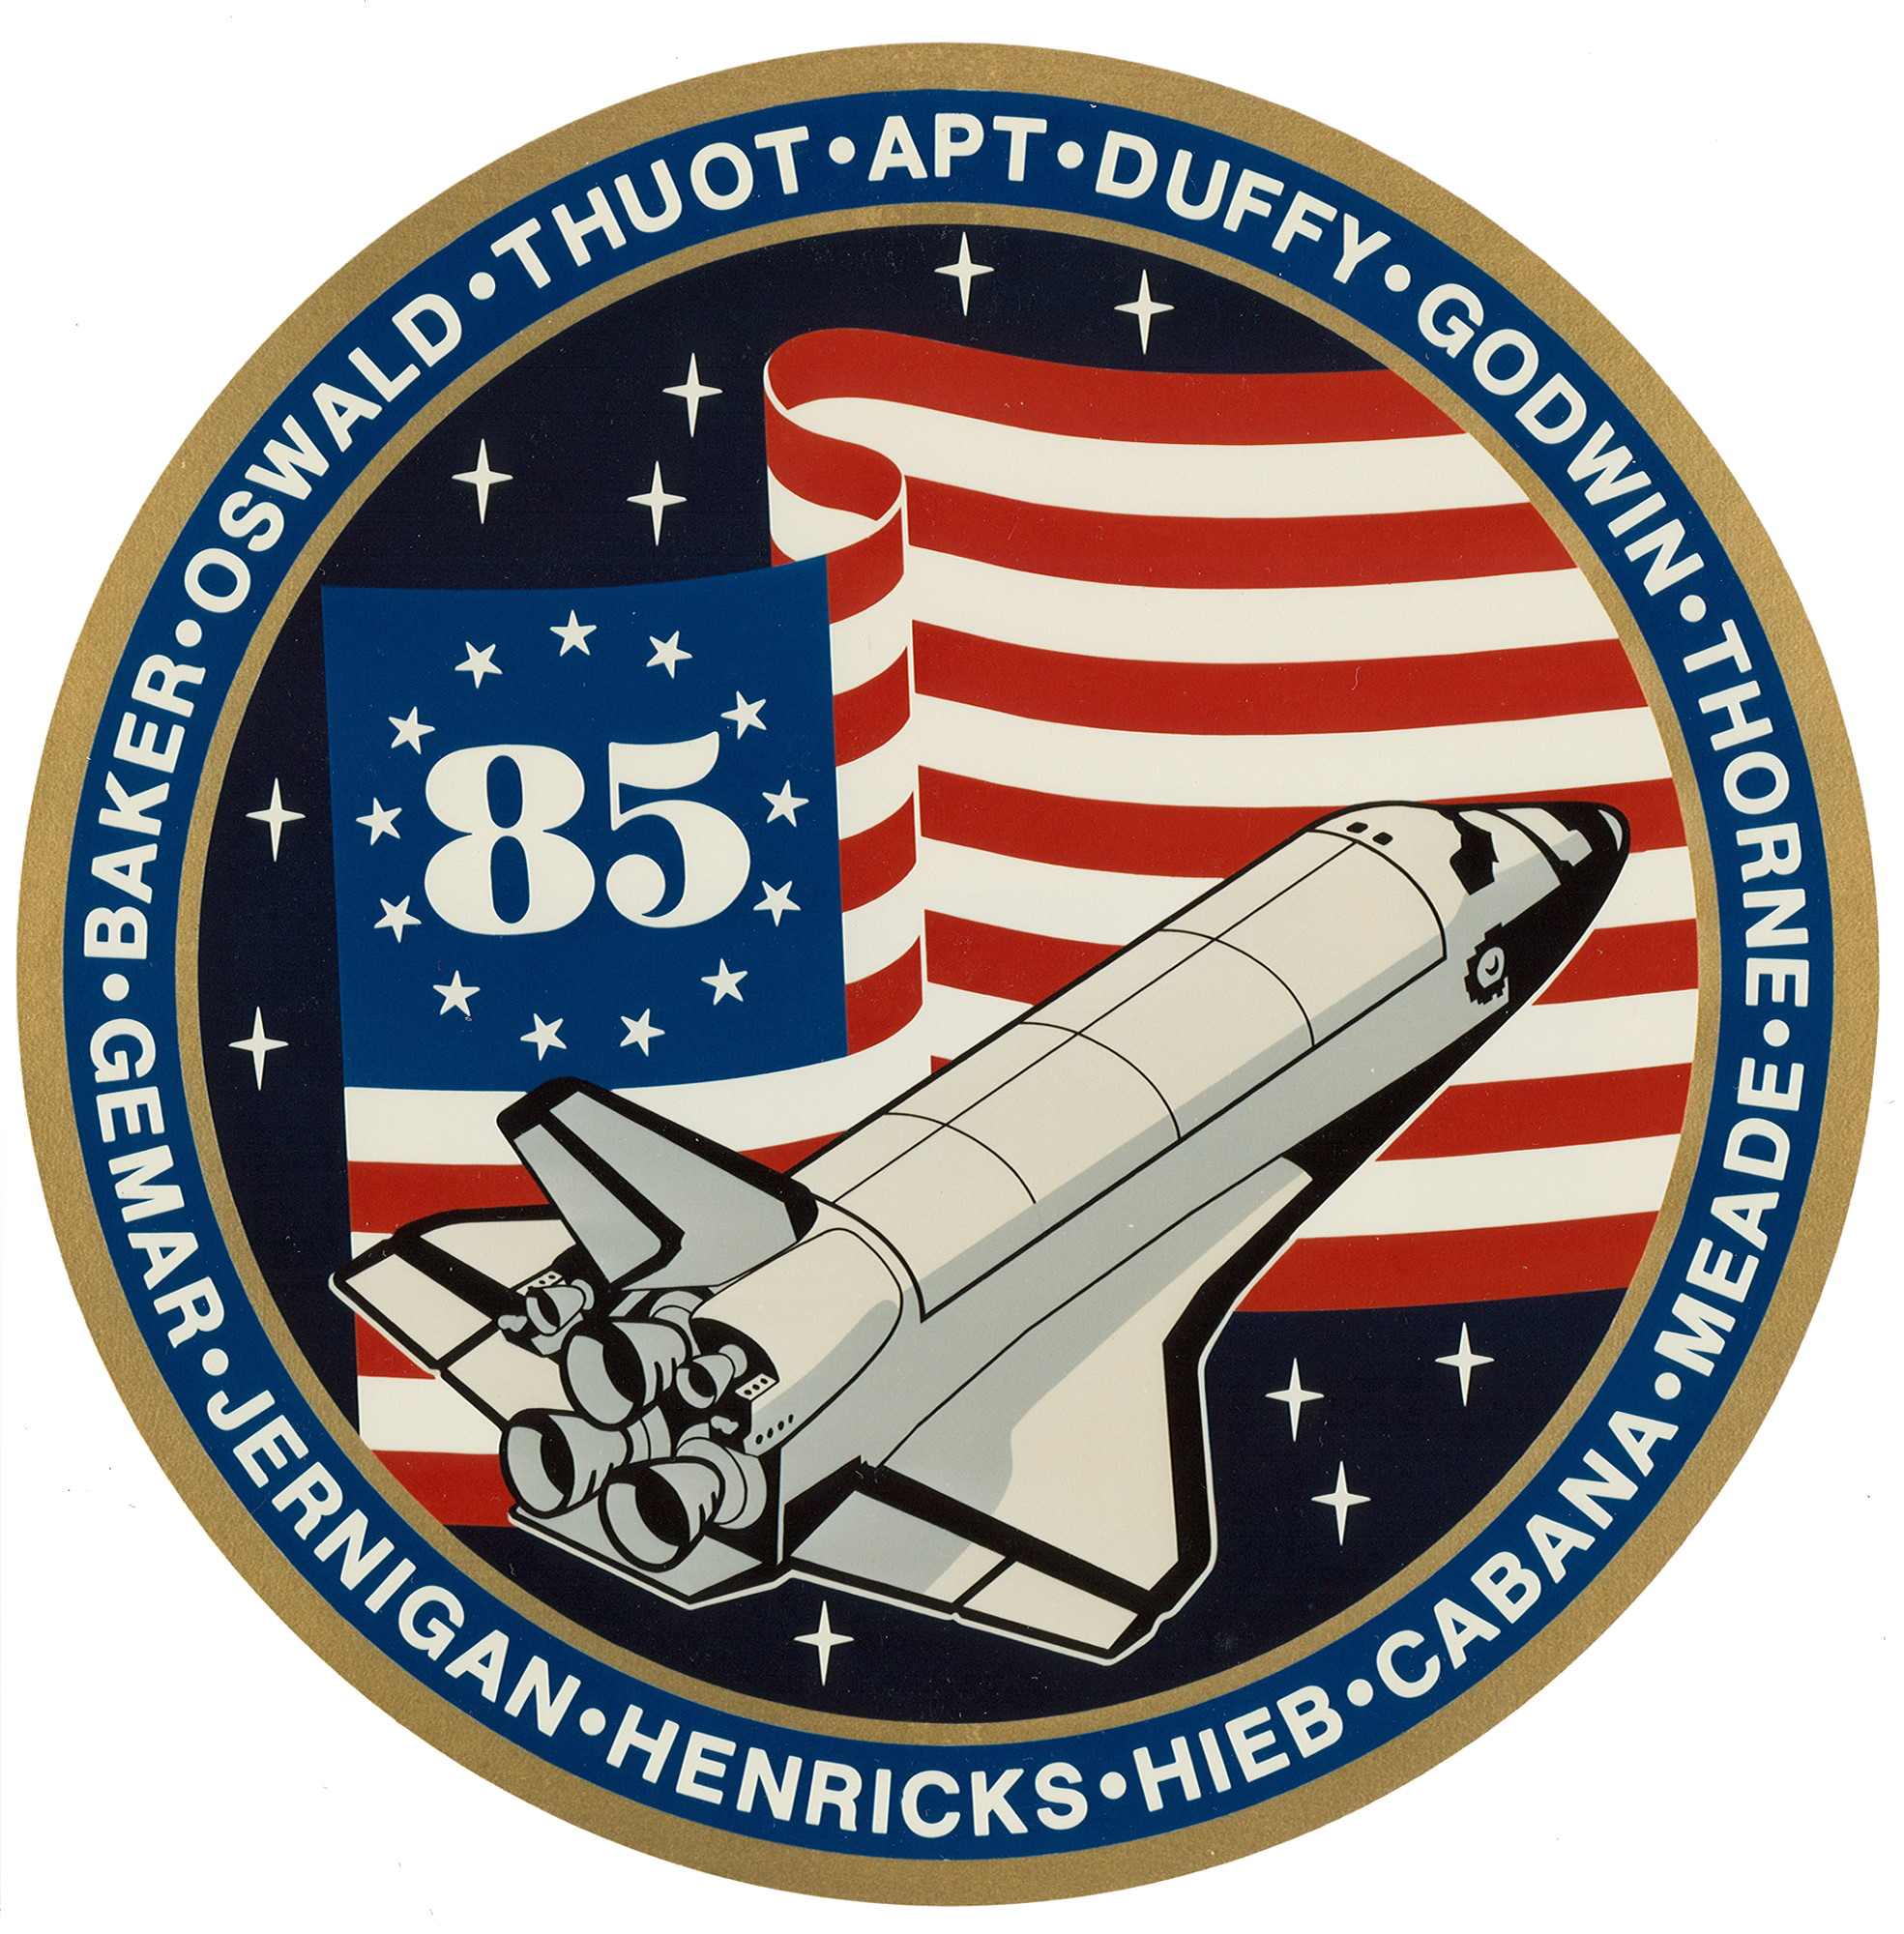 NASA Patches (page 3) - Pics about space